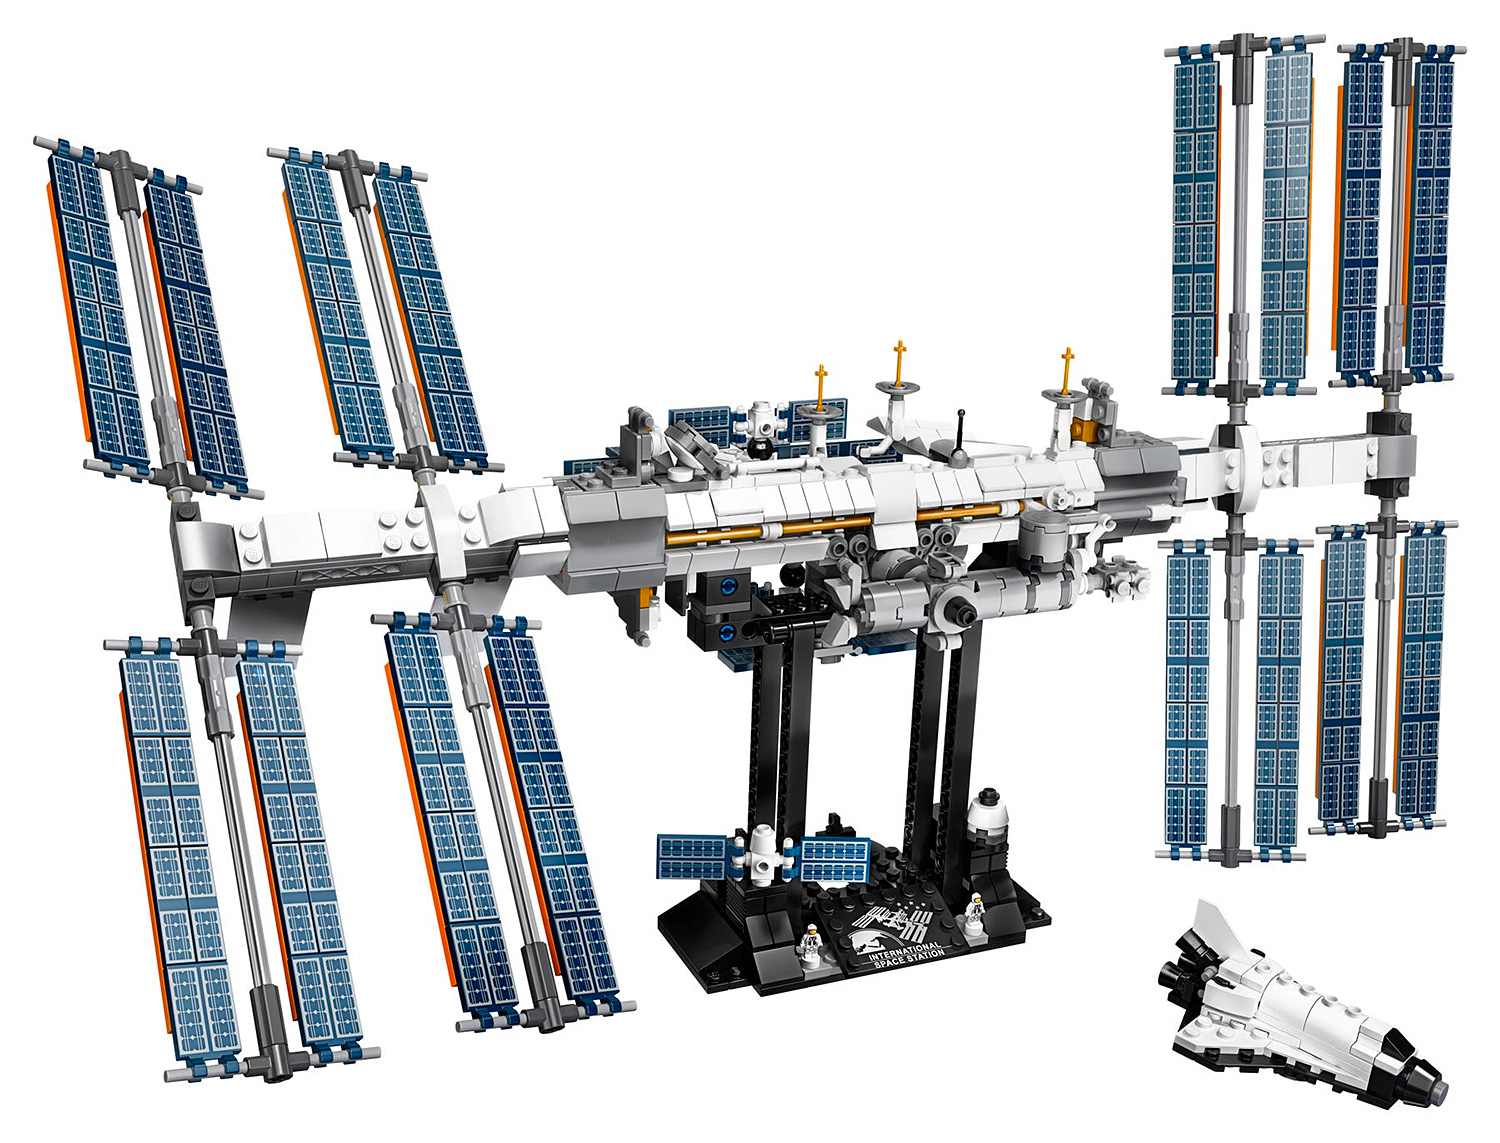 LEGO Launches International Space Station Set at werd.com